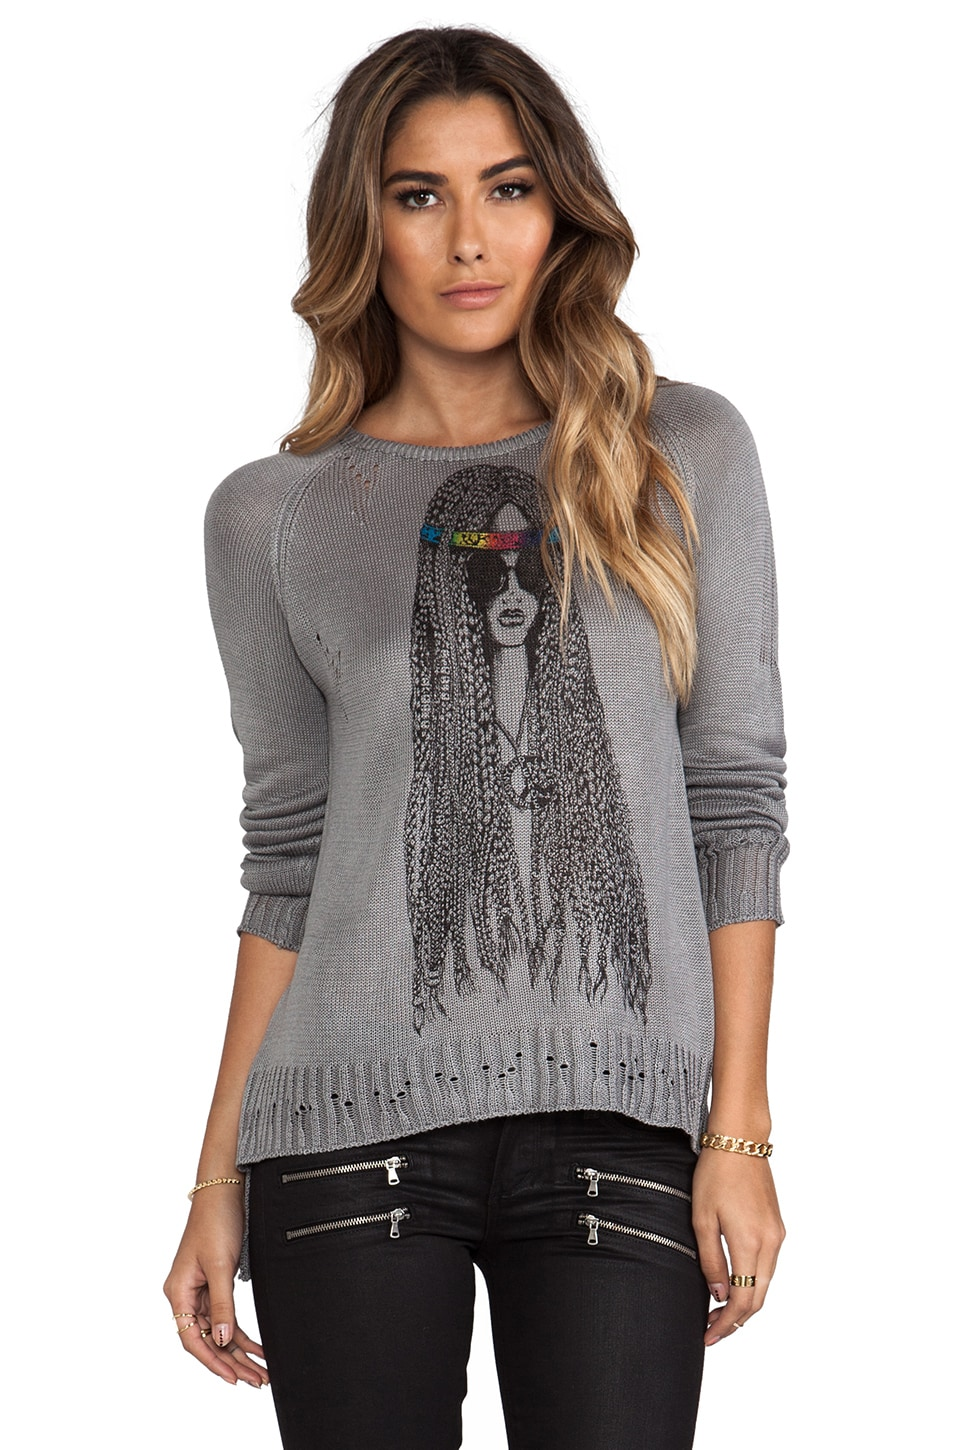 Lauren Moshi Helena Foil Hippie Sweater in Heather Grey